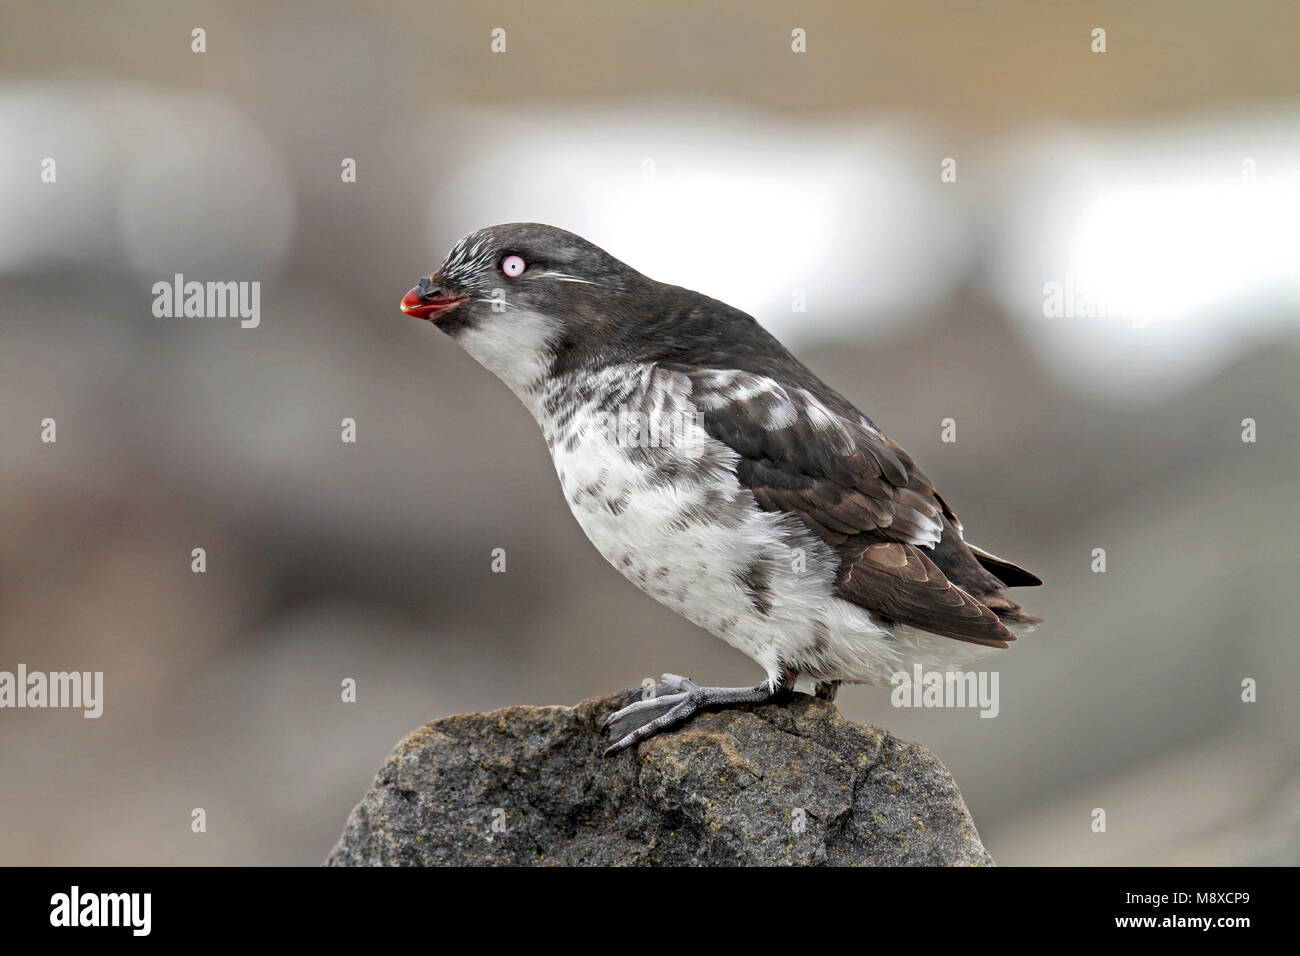 Dwergalk zittend op rots, Least Auklet perched on rock - Stock Image